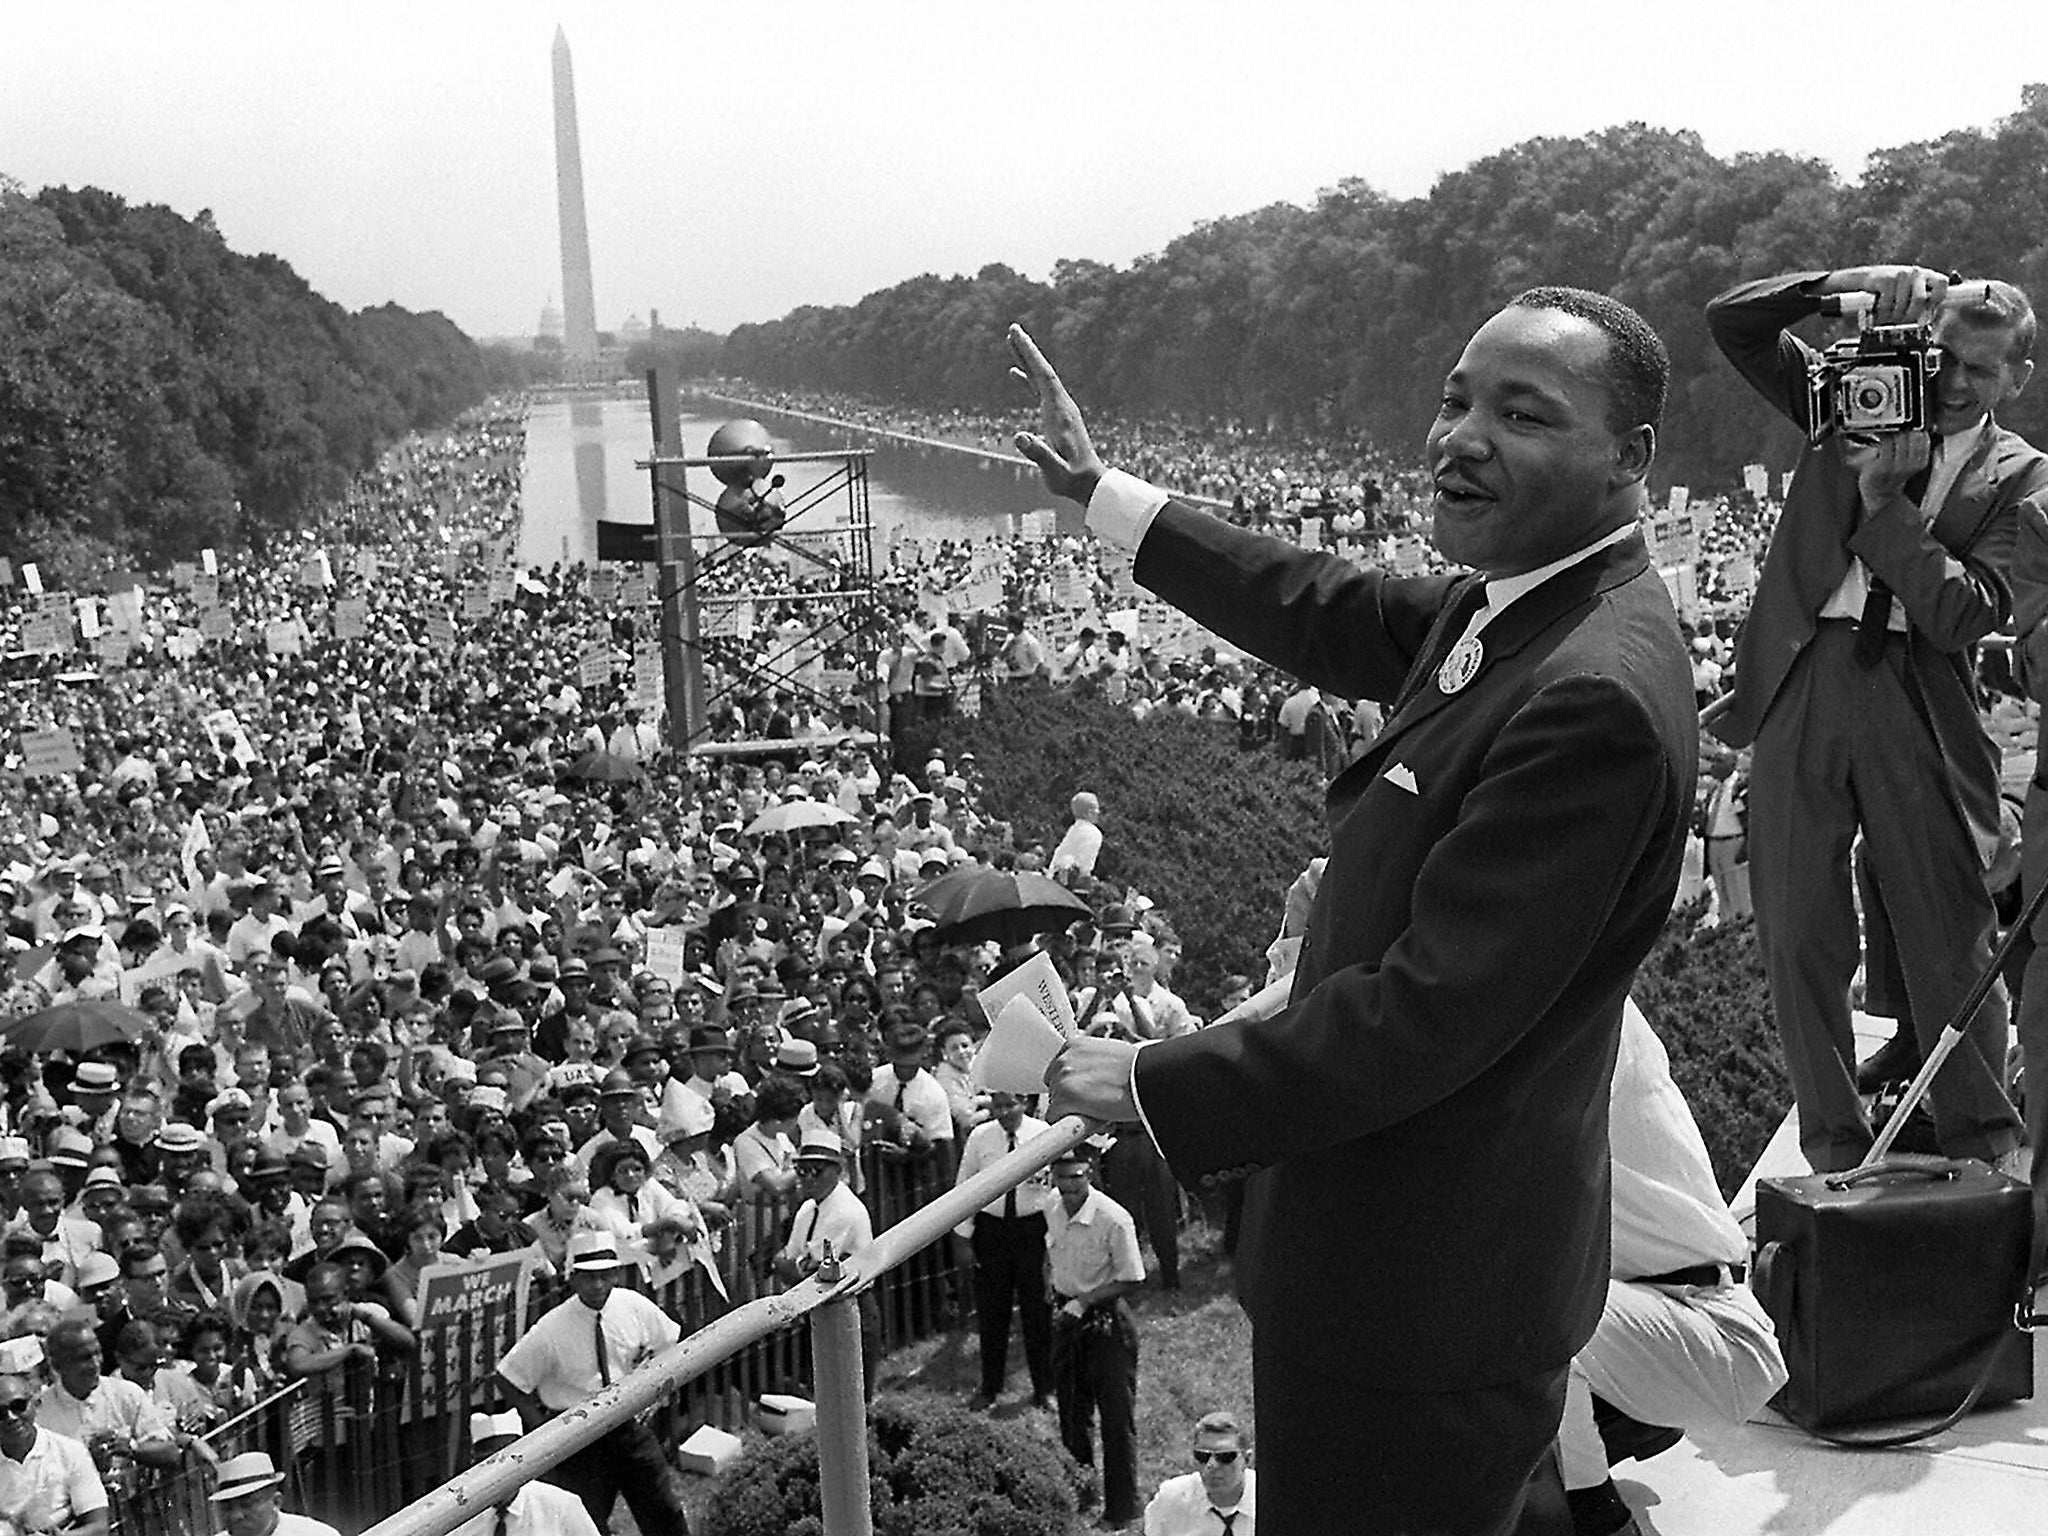 Happy Birthday King Quotes ~ Martin luther king day 2018: nine quotes from the civil rights